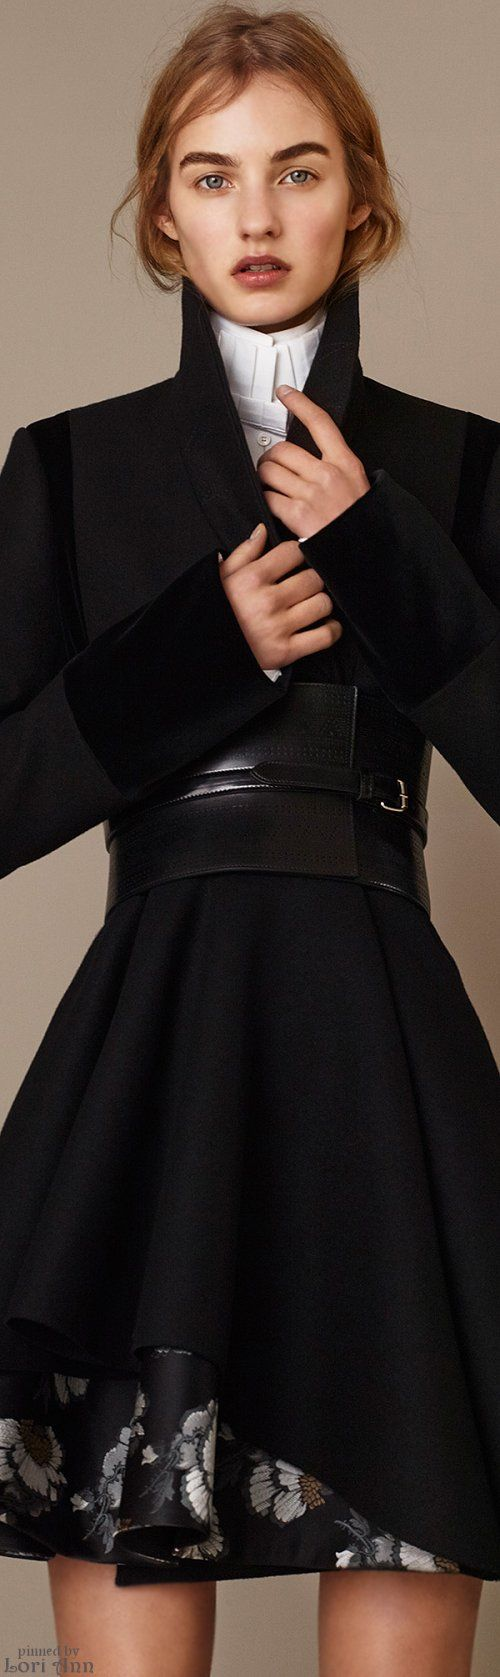 Alexander McQueen Pre-Fall 2015. Victorian Gentleman with feminine twist